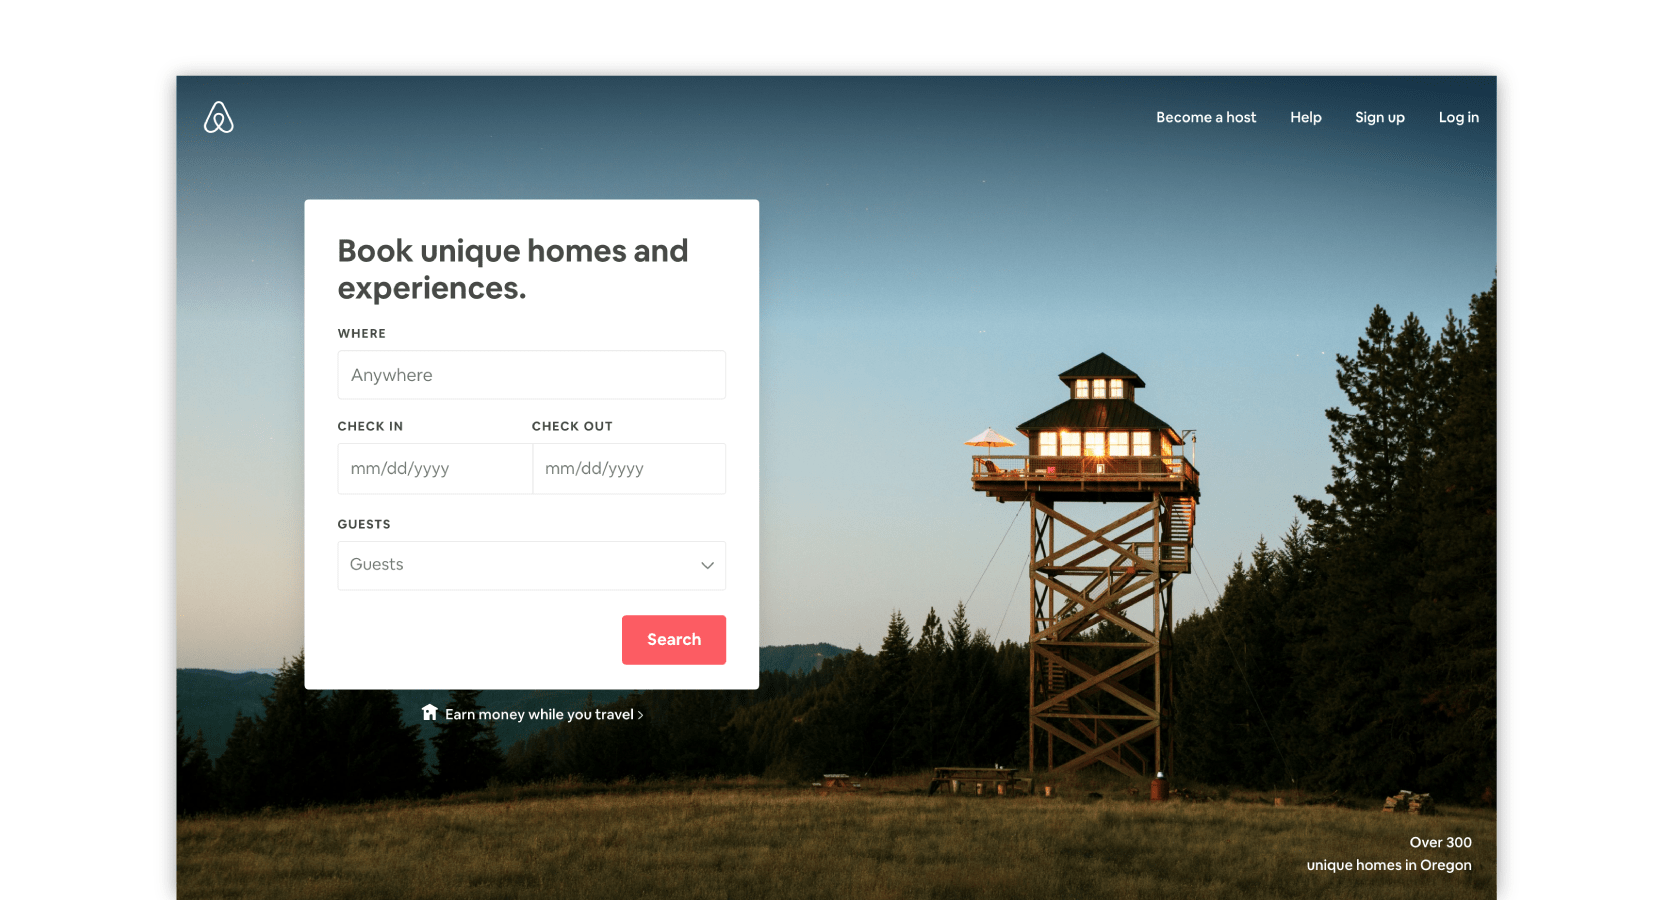 Airbnb's homepage uses UI design patterns successfully